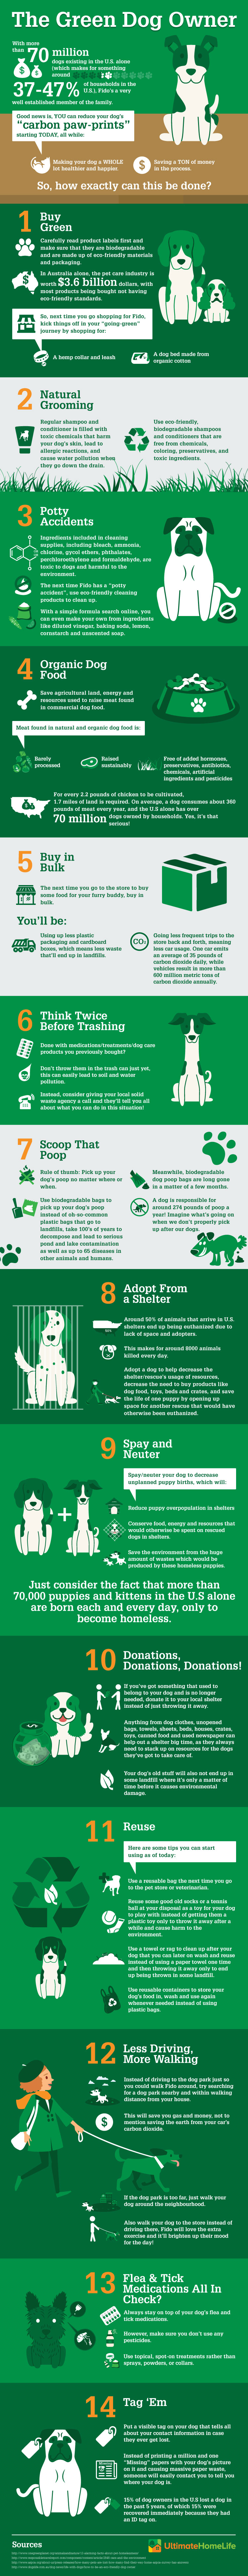 The Green Dog Owner Guide